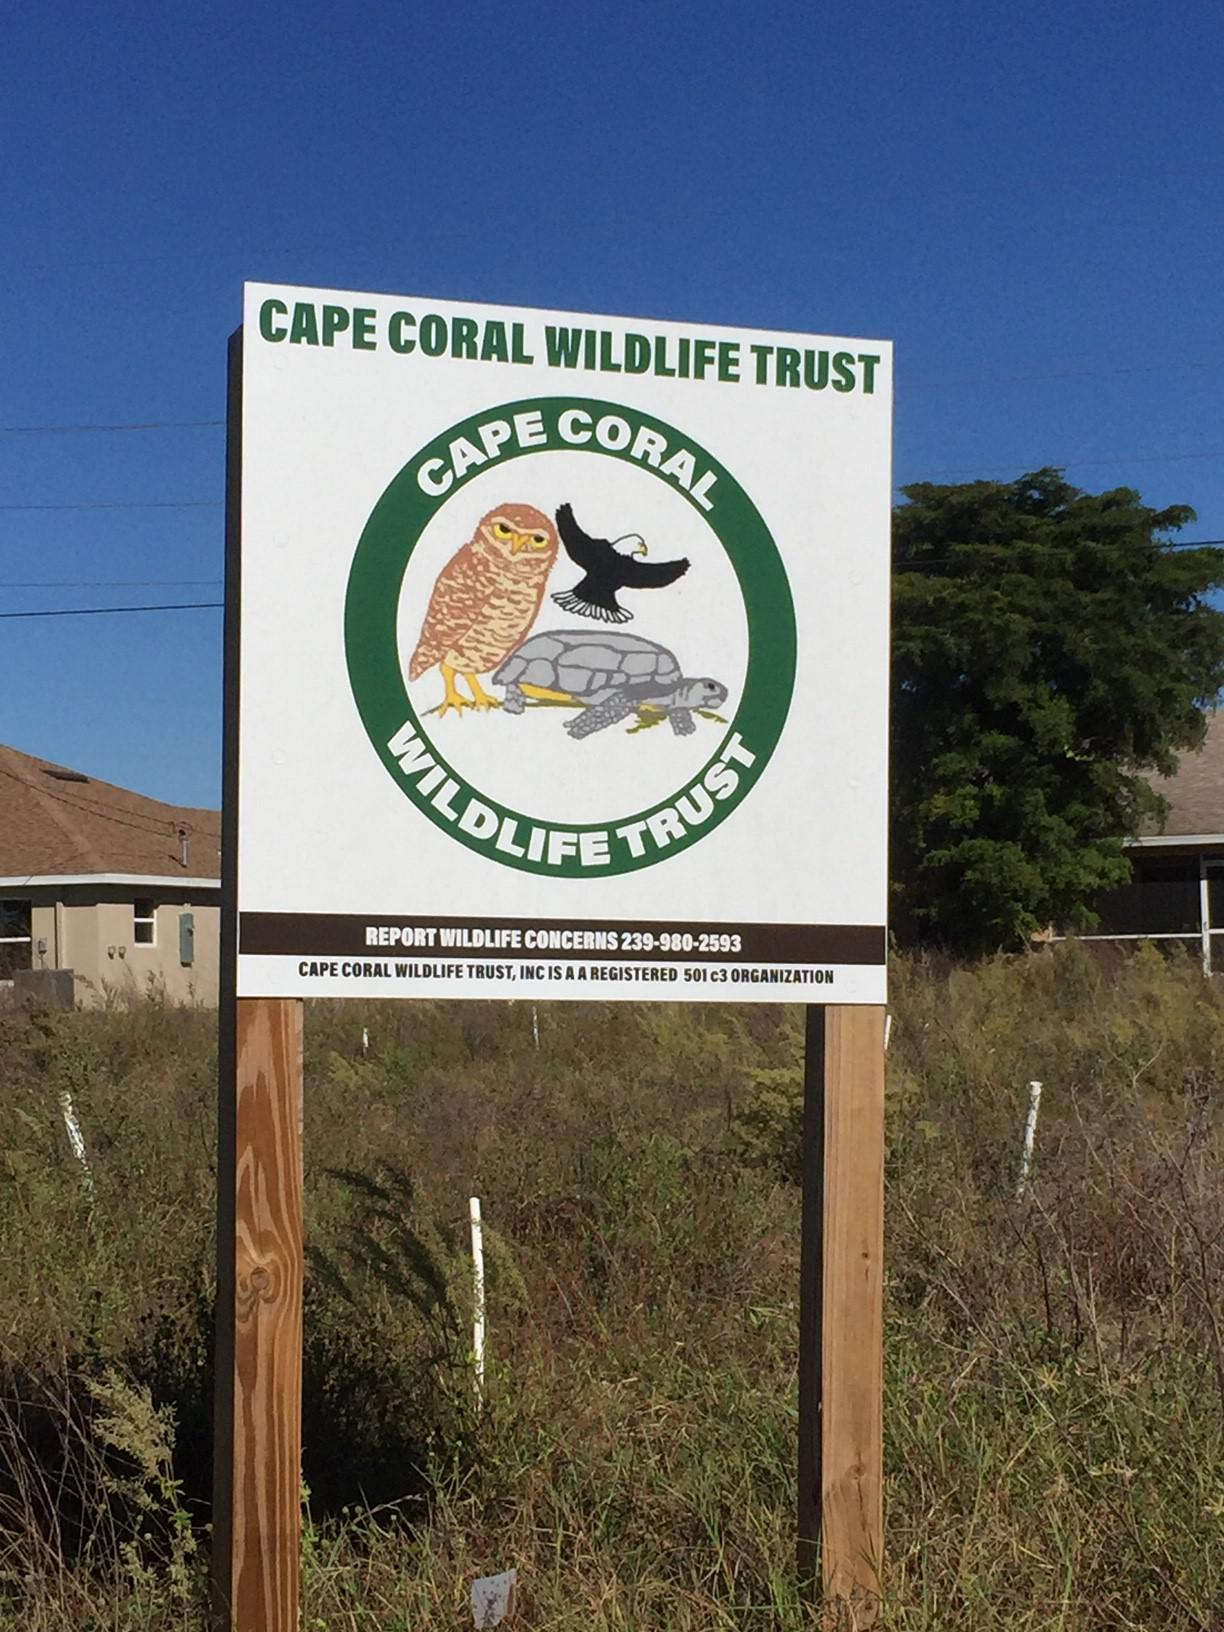 CCWT Burrowing Owl habitat land acquisition